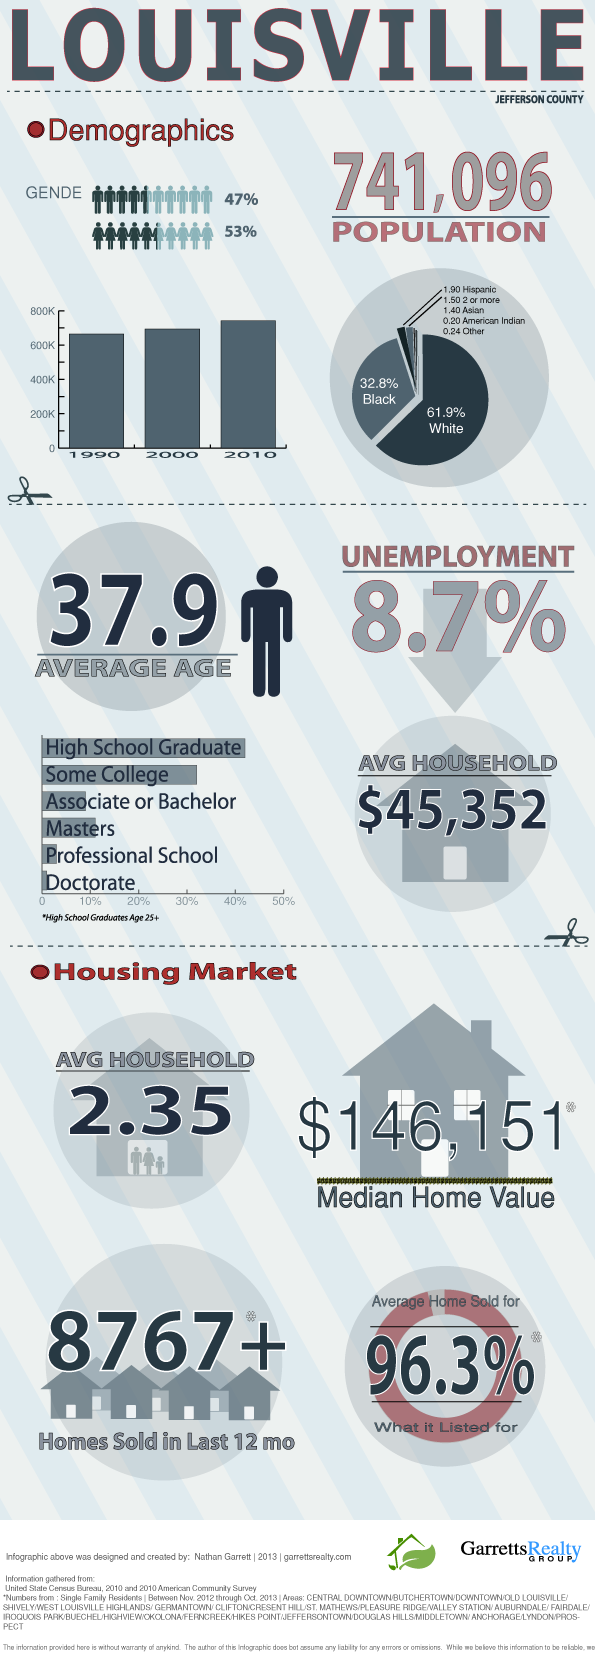 Louisville Ky Demographic Infographic